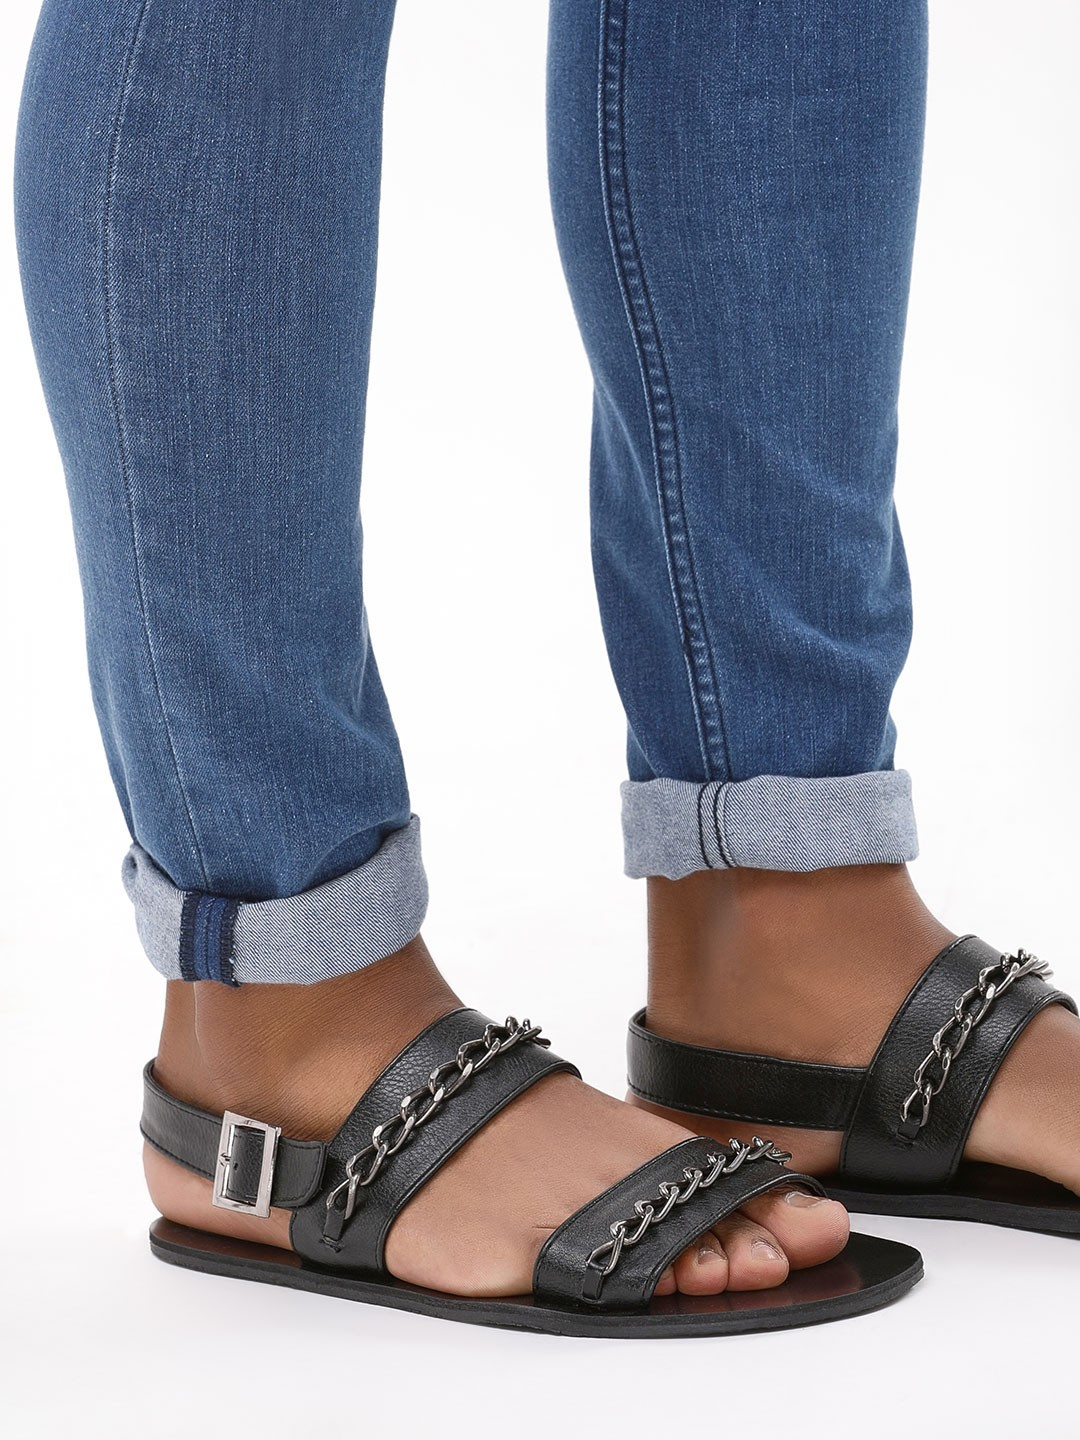 KOOVS Black Sandals With Chain Detail 1